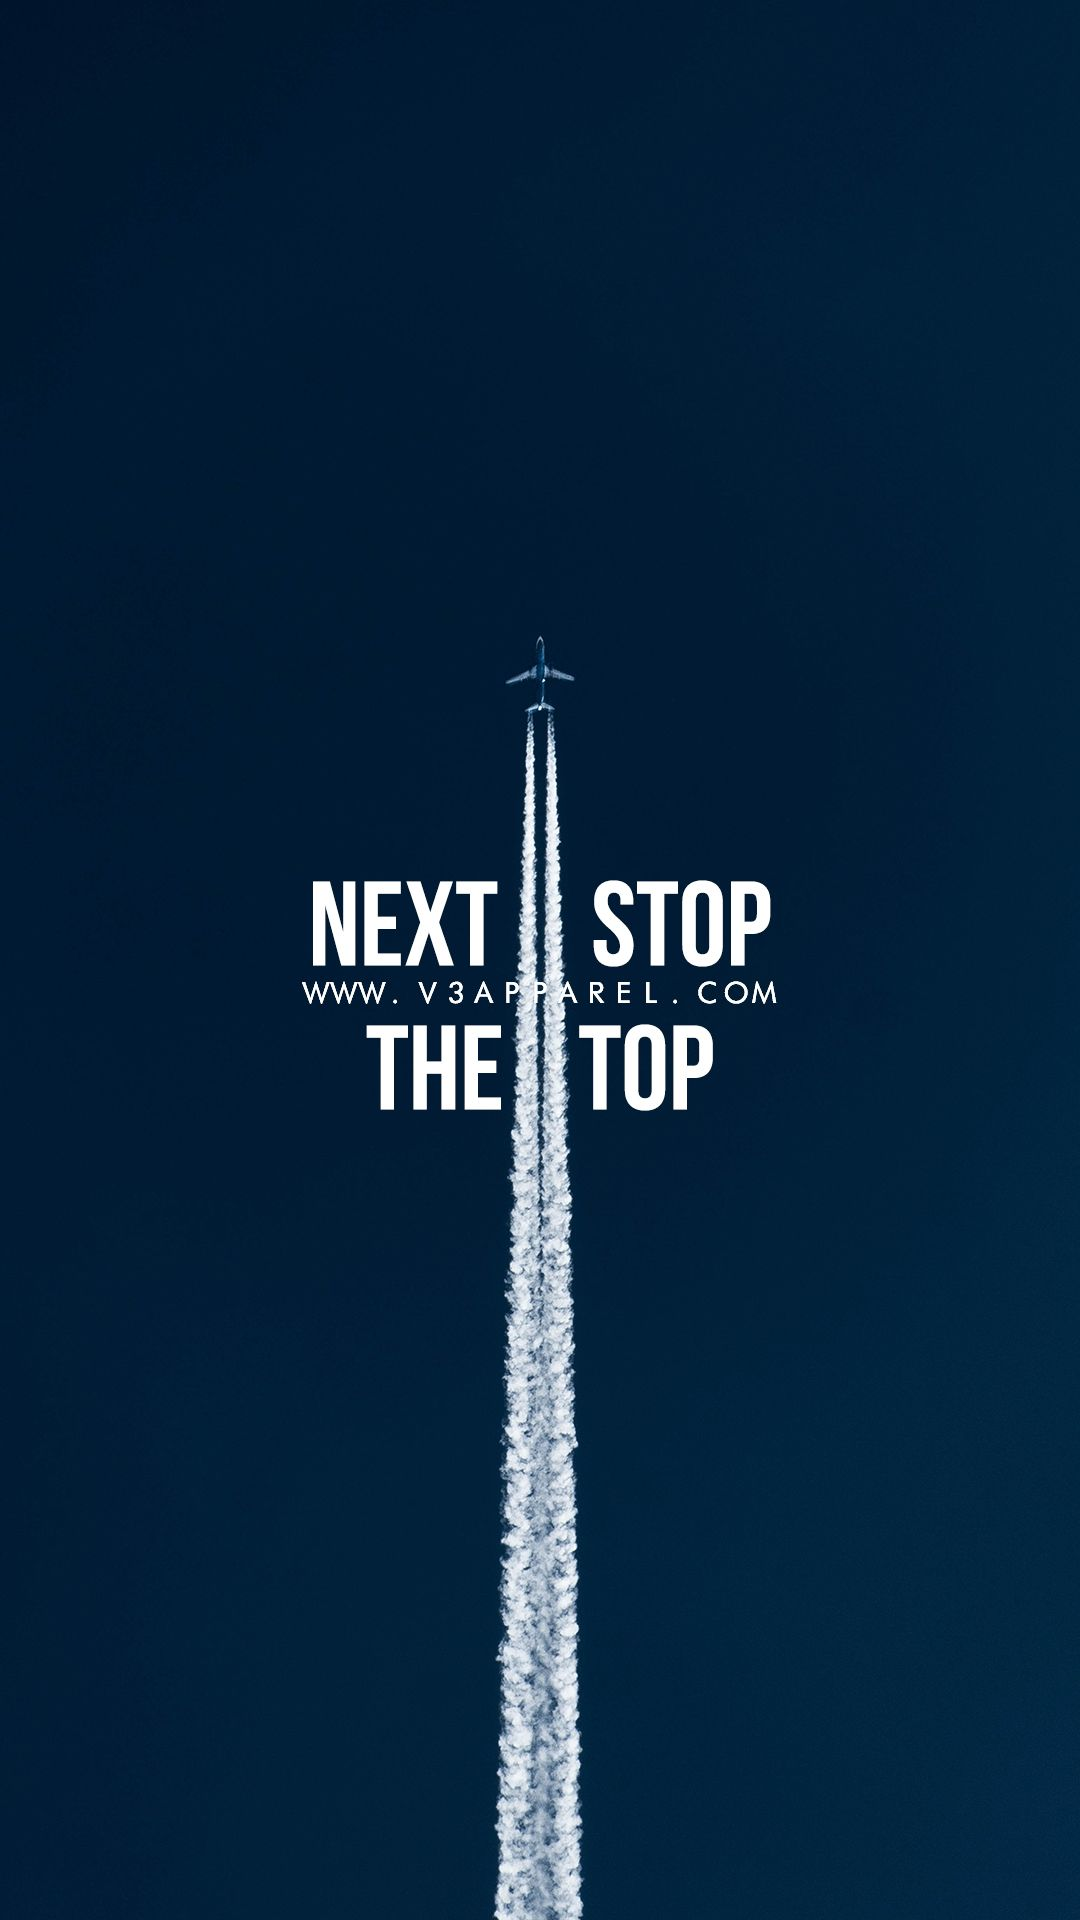 Next Stop The Top Download This Free Wallpaper Www V3apparel Com Madet Motivational Quotes For Working Out Fitness Motivation Wallpaper Motivational Quotes